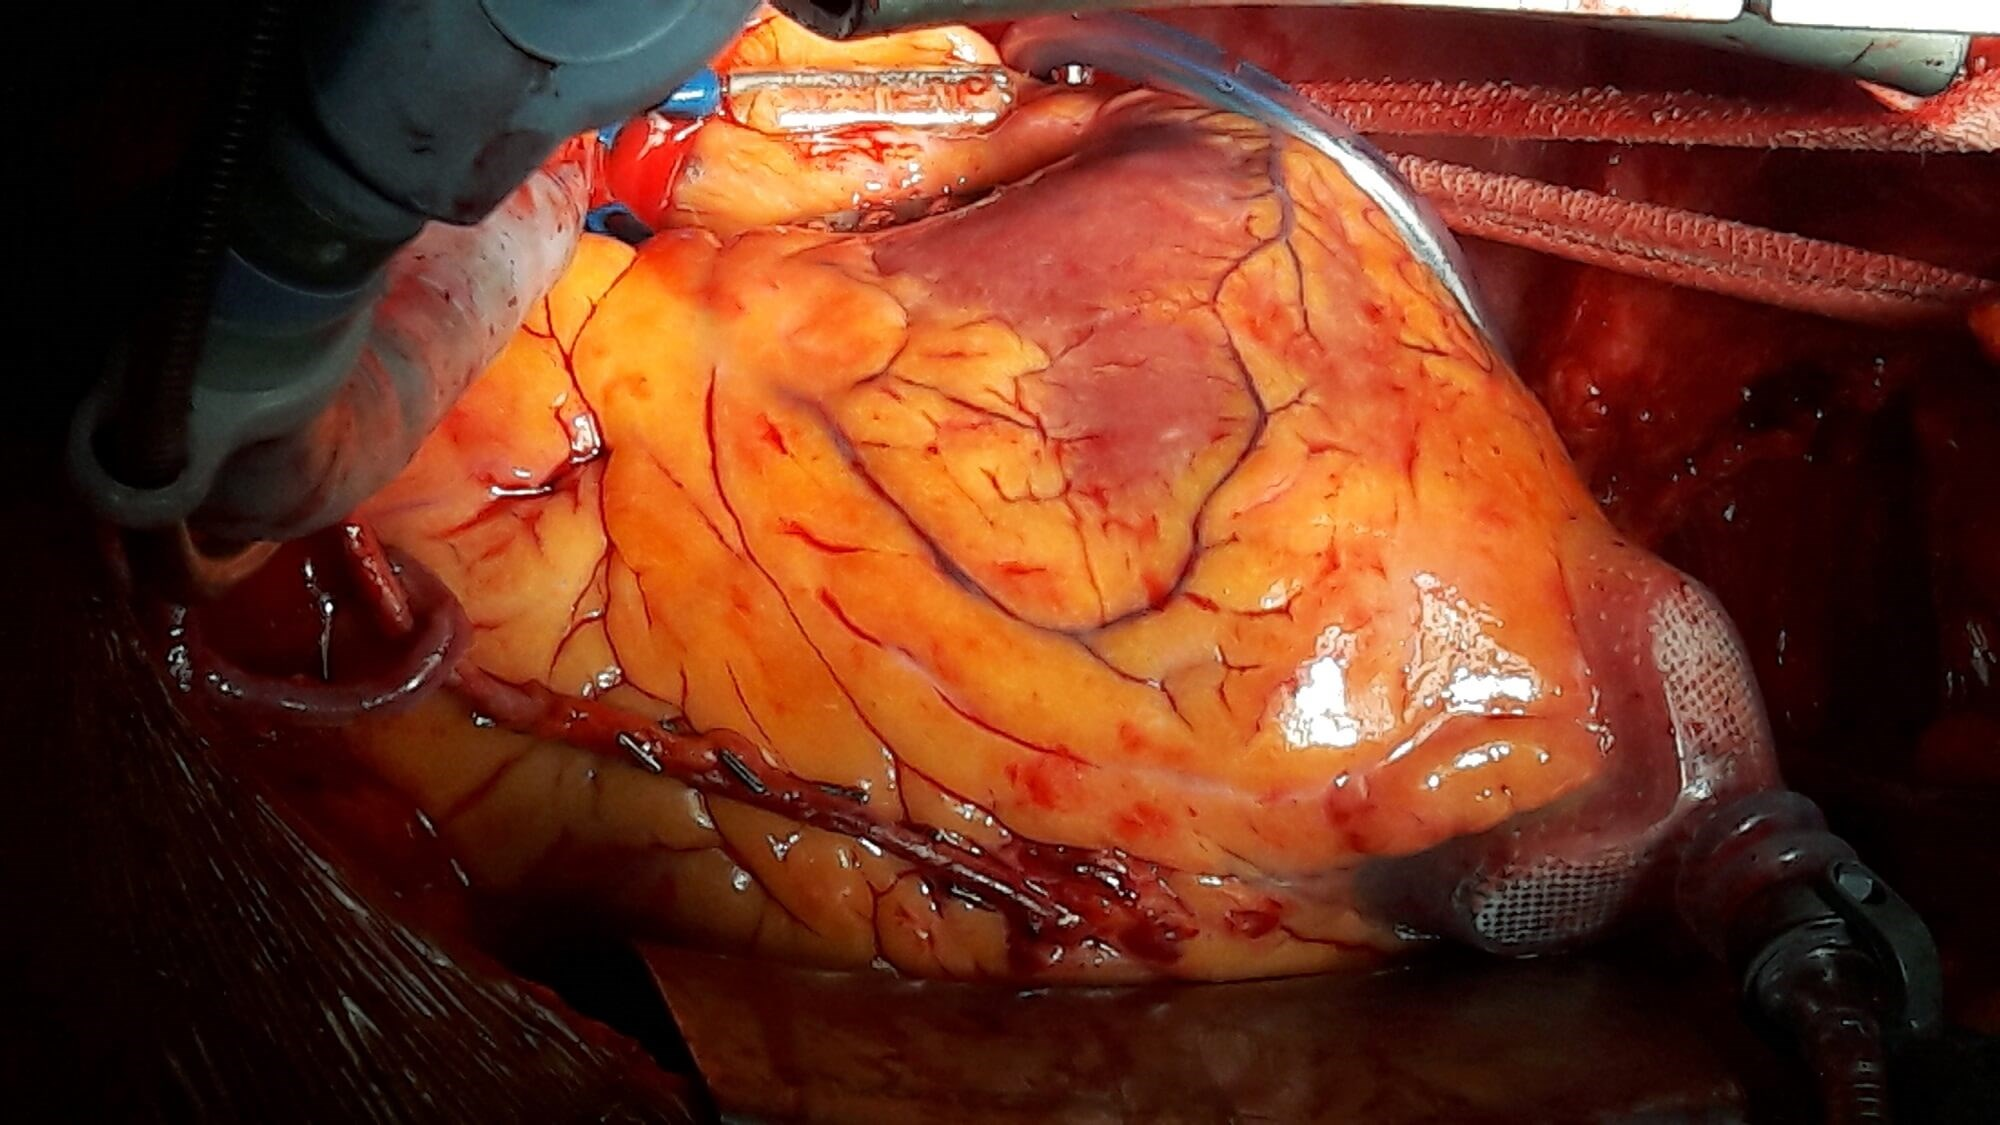 Coronary artery bypass grafting may be a superior revascularization strategy in patients with diabetes and multivessel disease.